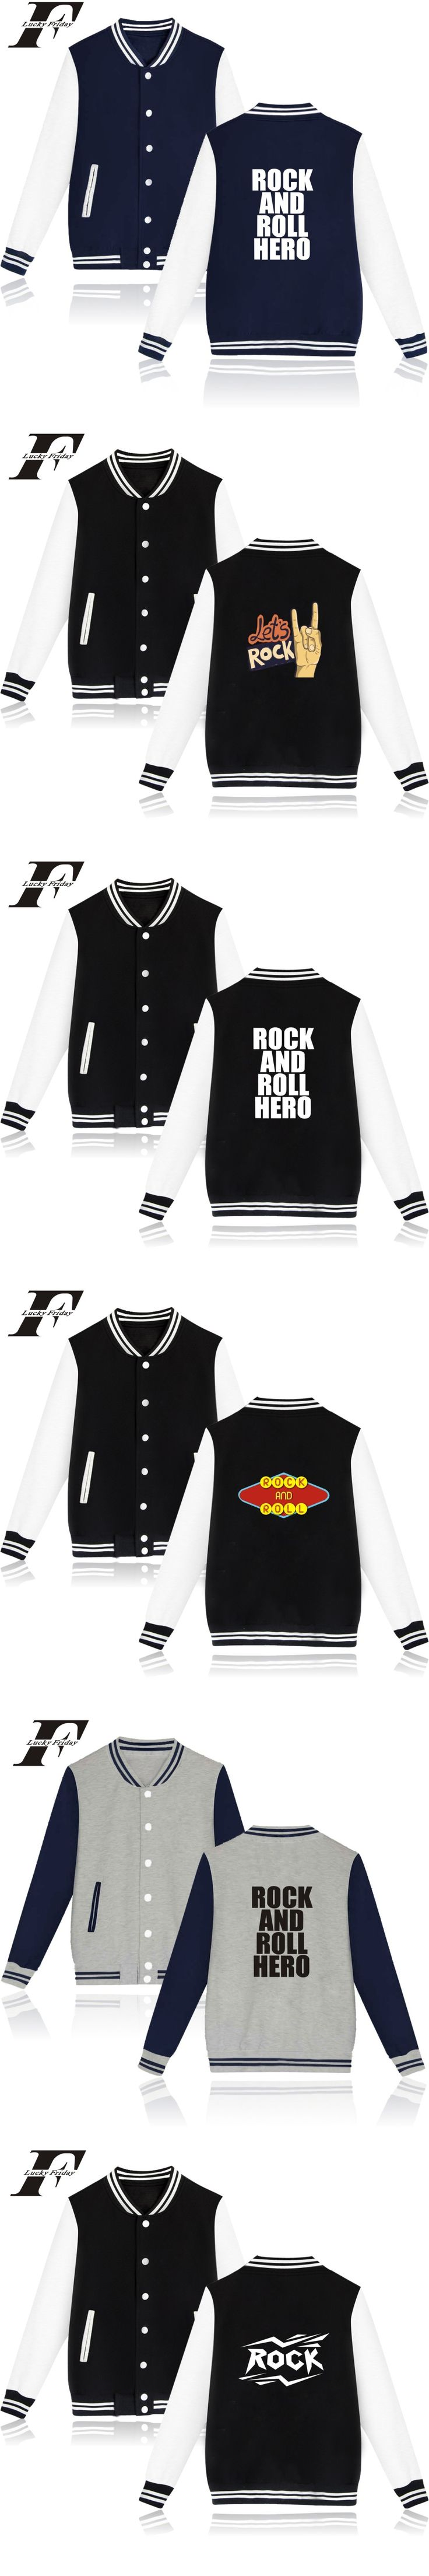 winter jacket men bomber jacket Brand Rock And Roll Hero College Baseball Jackets men jaqueta masculina fitness jacket roupas